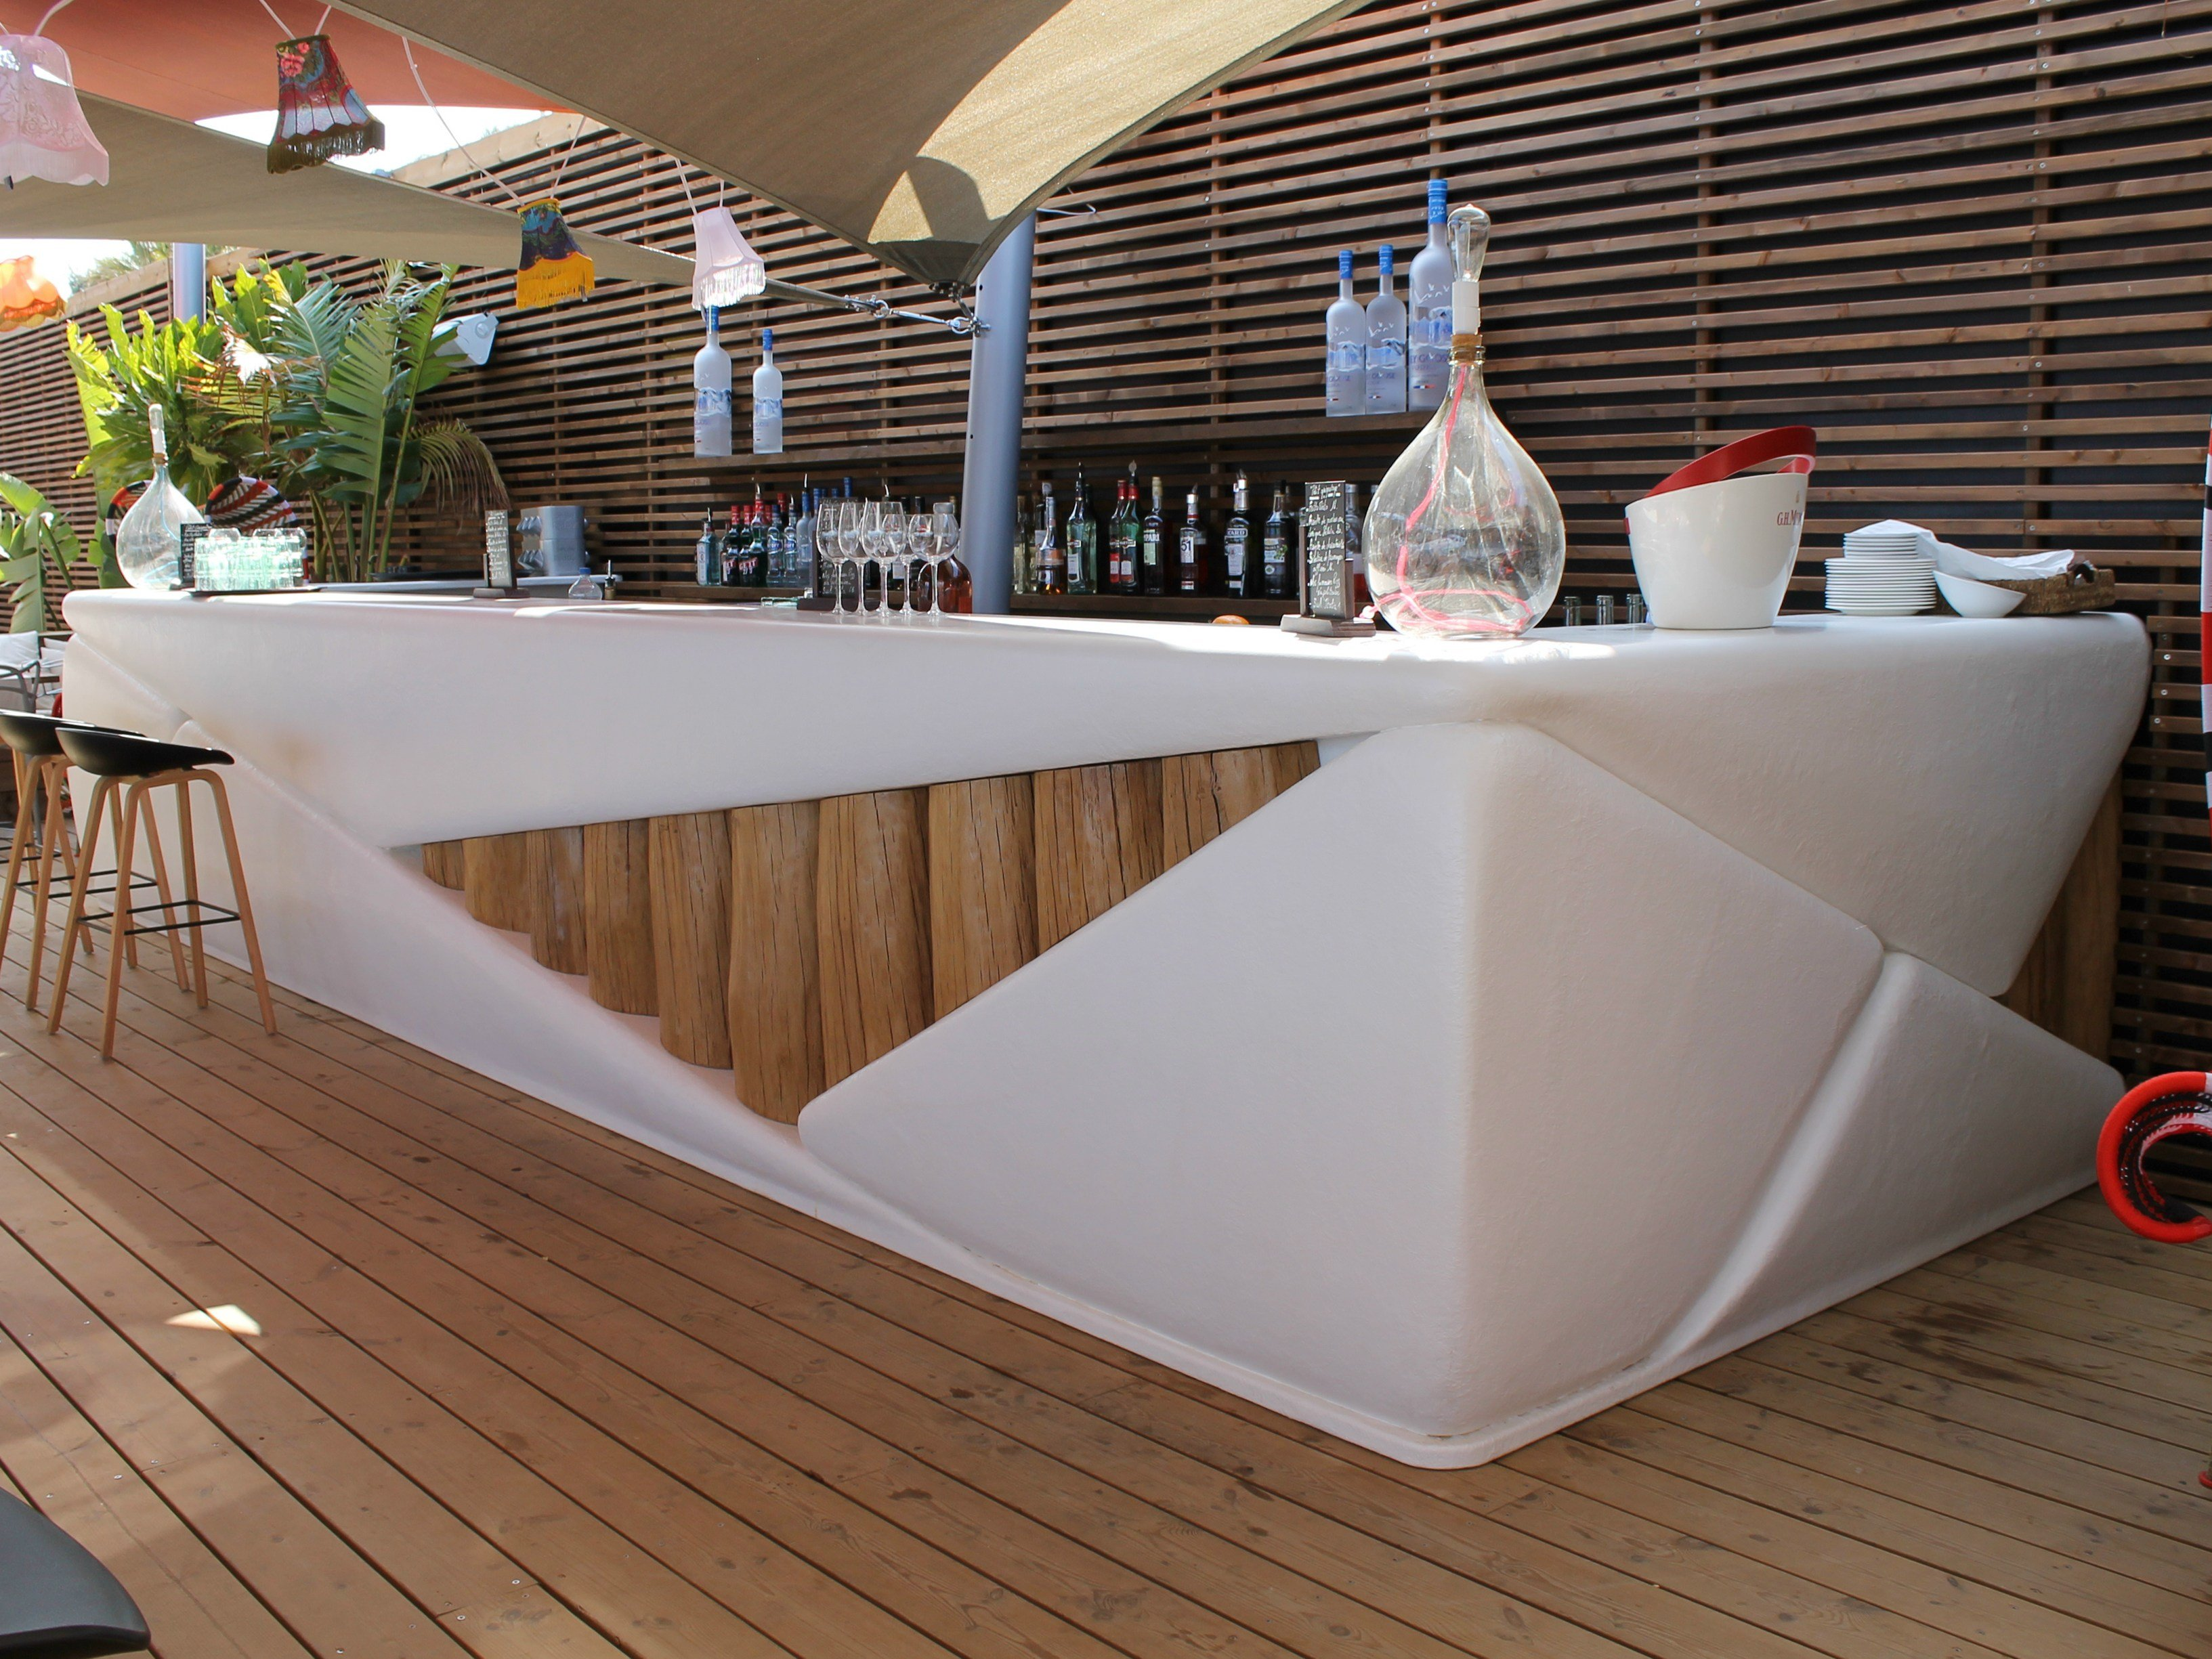 Balc o de bar de resina bar bond by binome design ingrid michel fr d ric pain for Siege de bar design